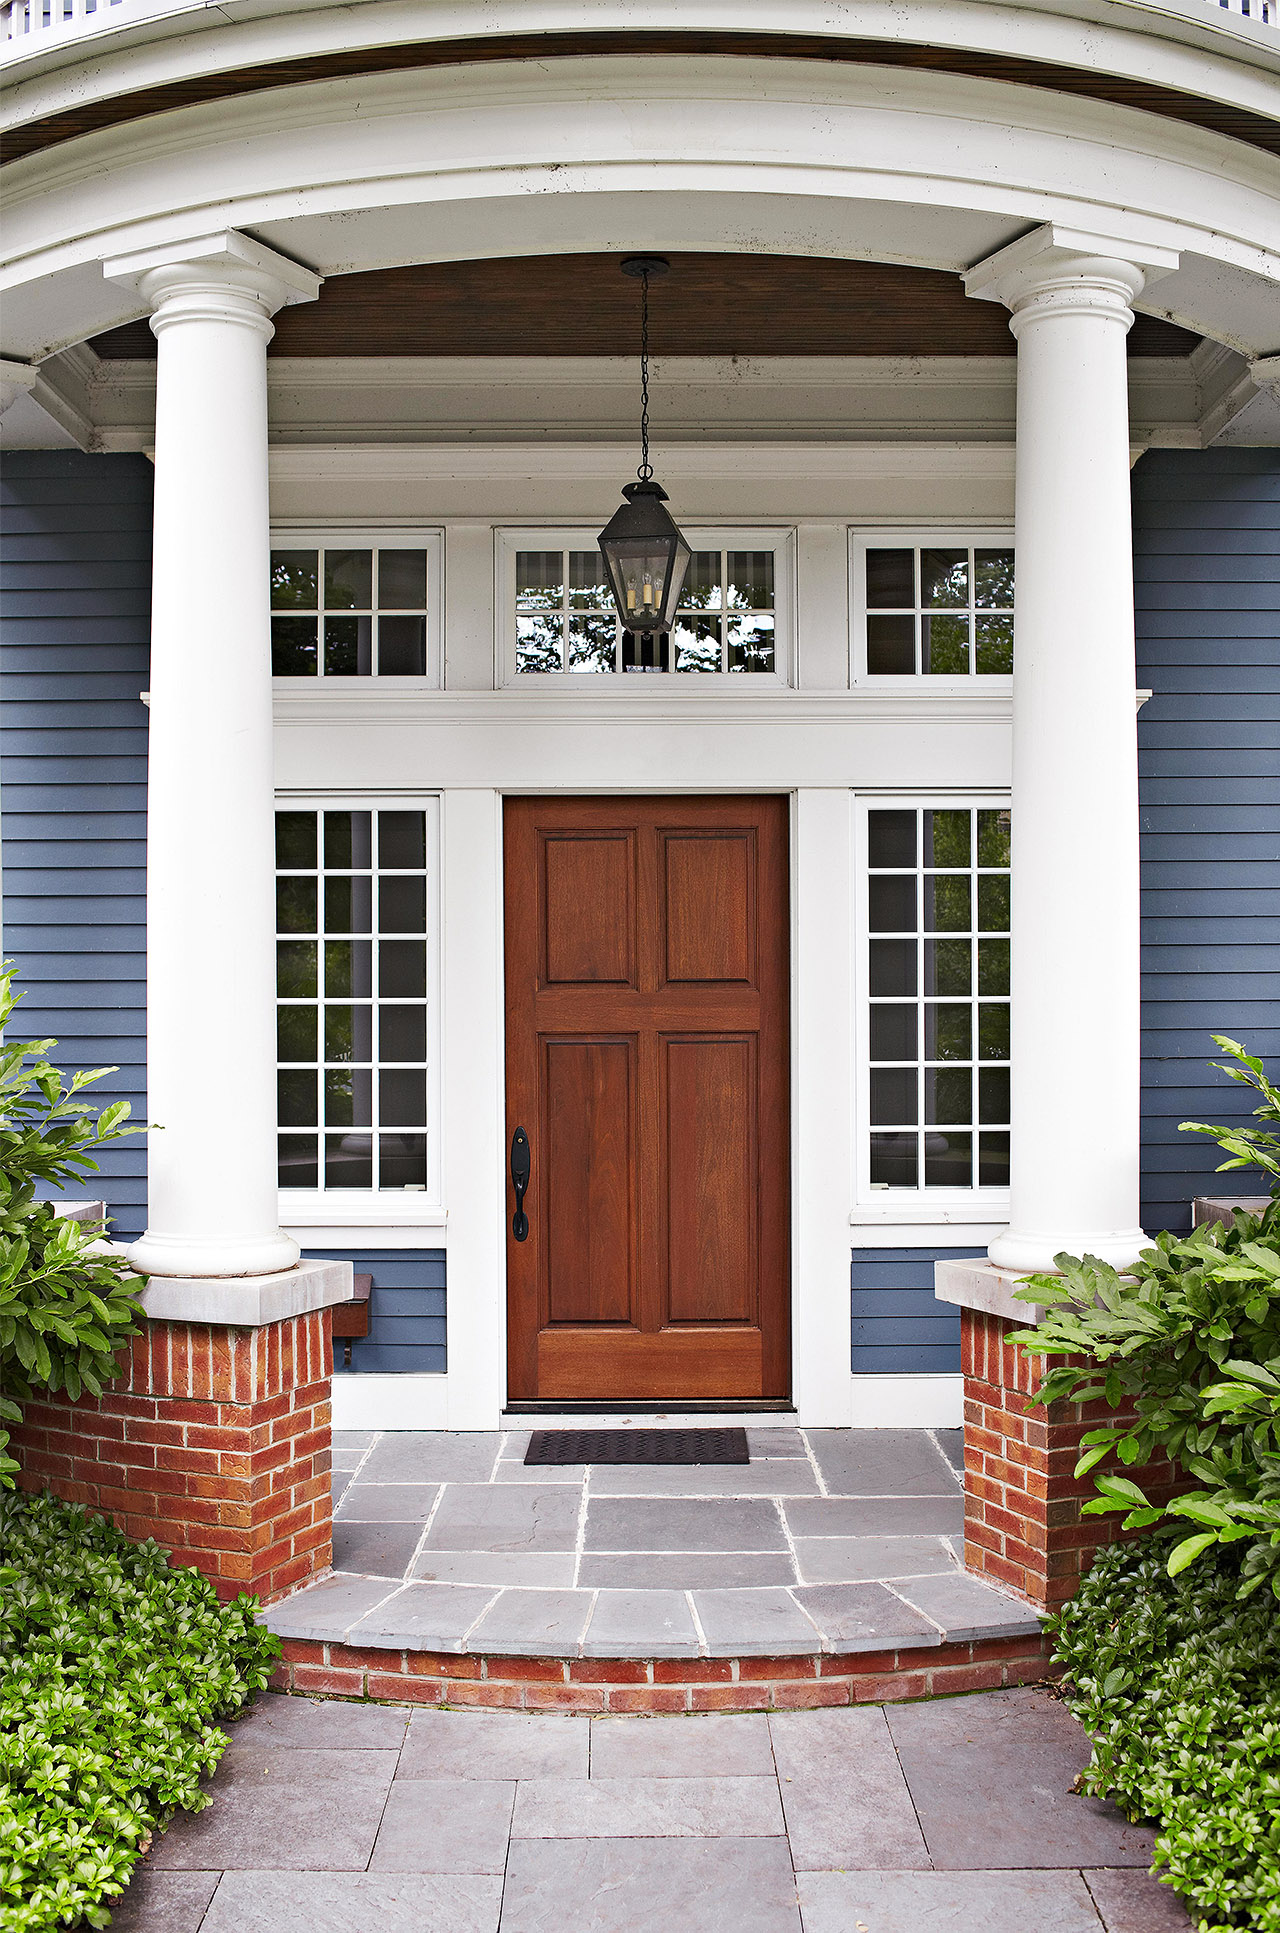 15 Easy Ways To Enhance Your Front Entry For An Inviting First Impression Better Homes Gardens